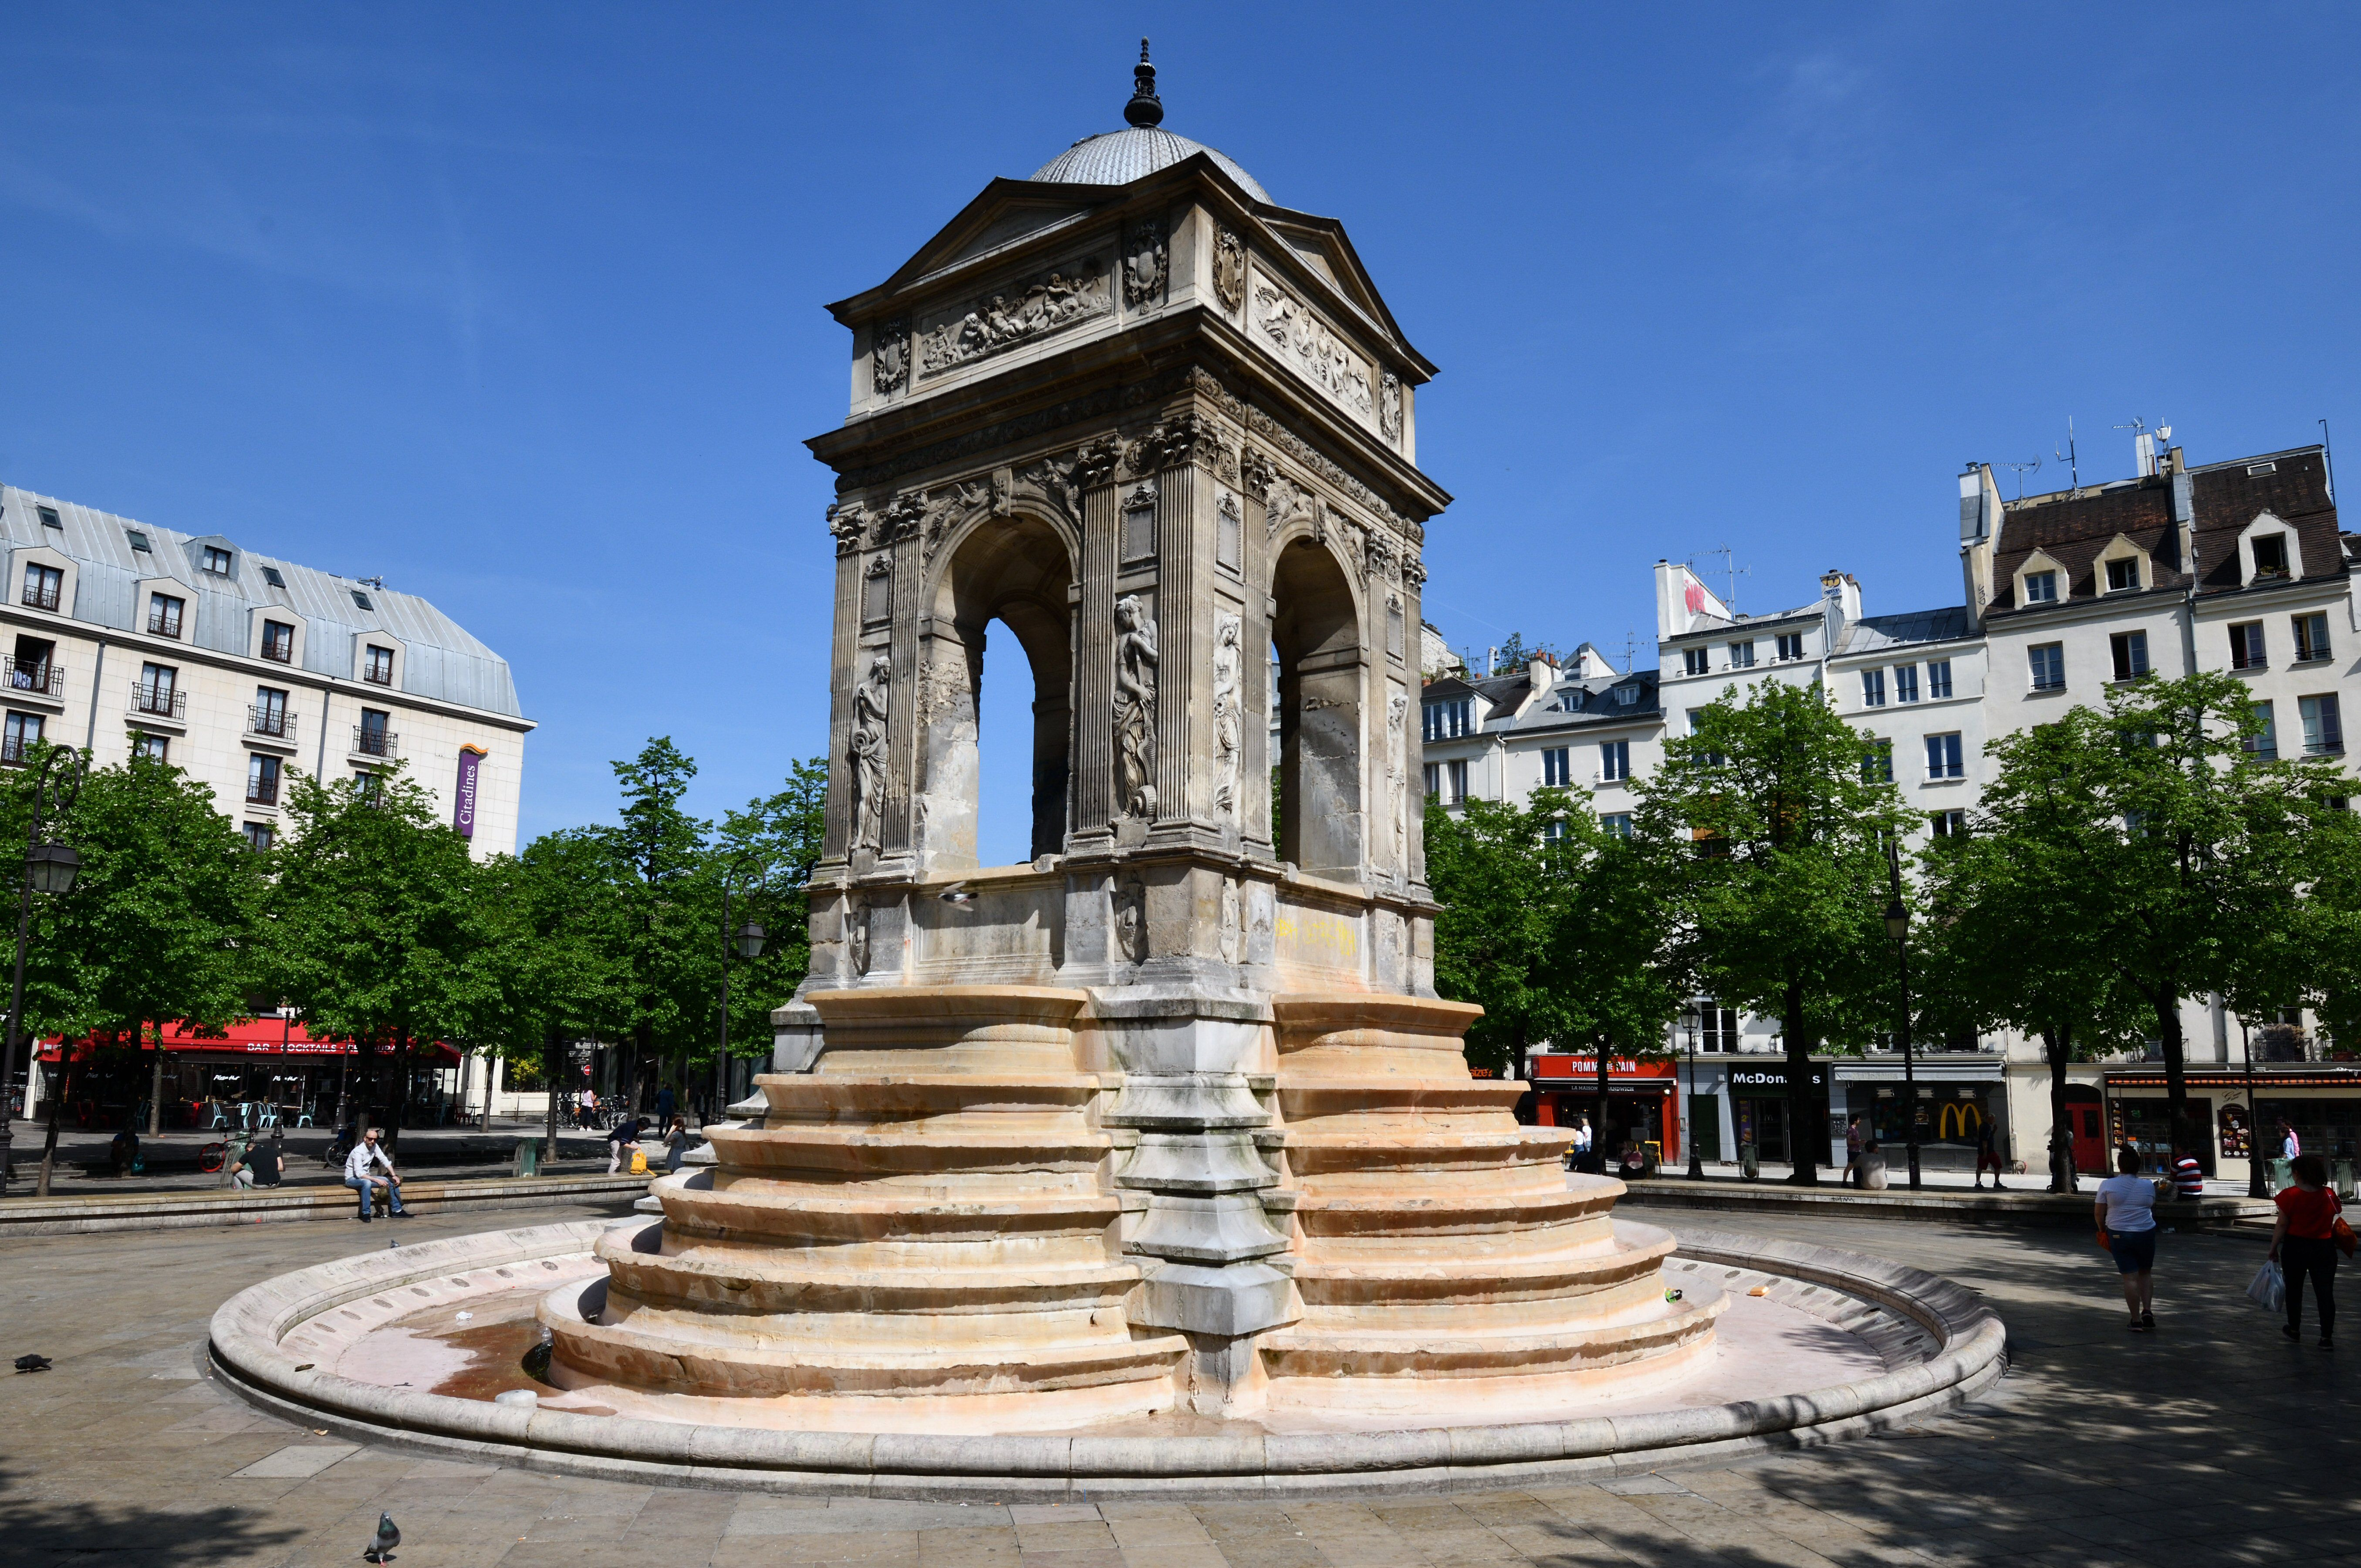 four-sided open monument with six steps on each side leading up to where a fountain or bell would be